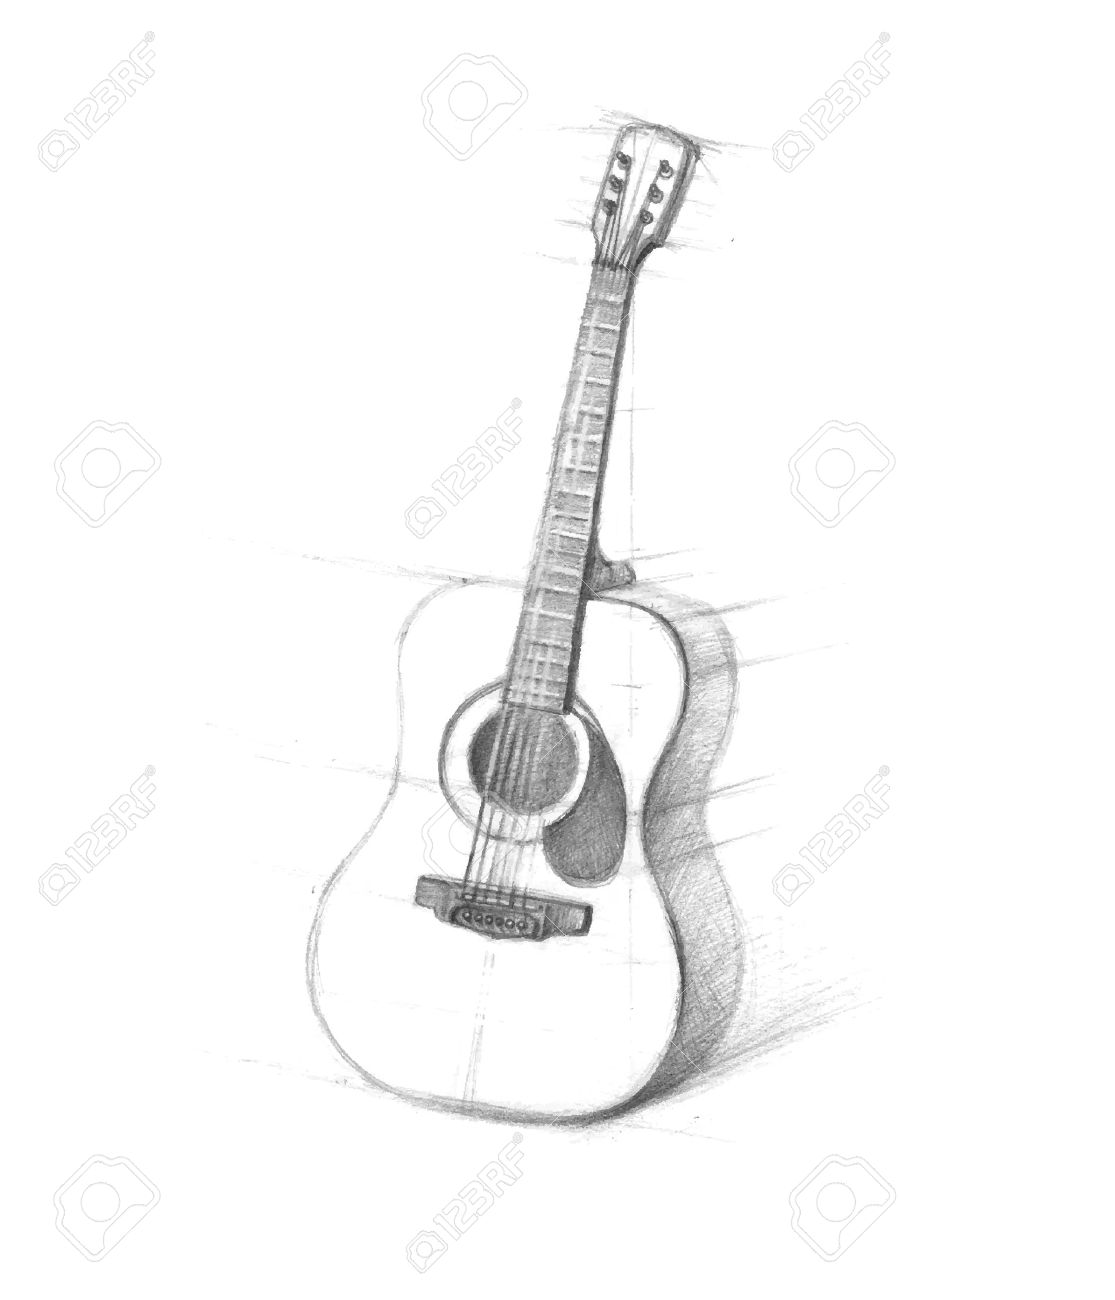 Sketch of guitars on white background drawn in pencil six string